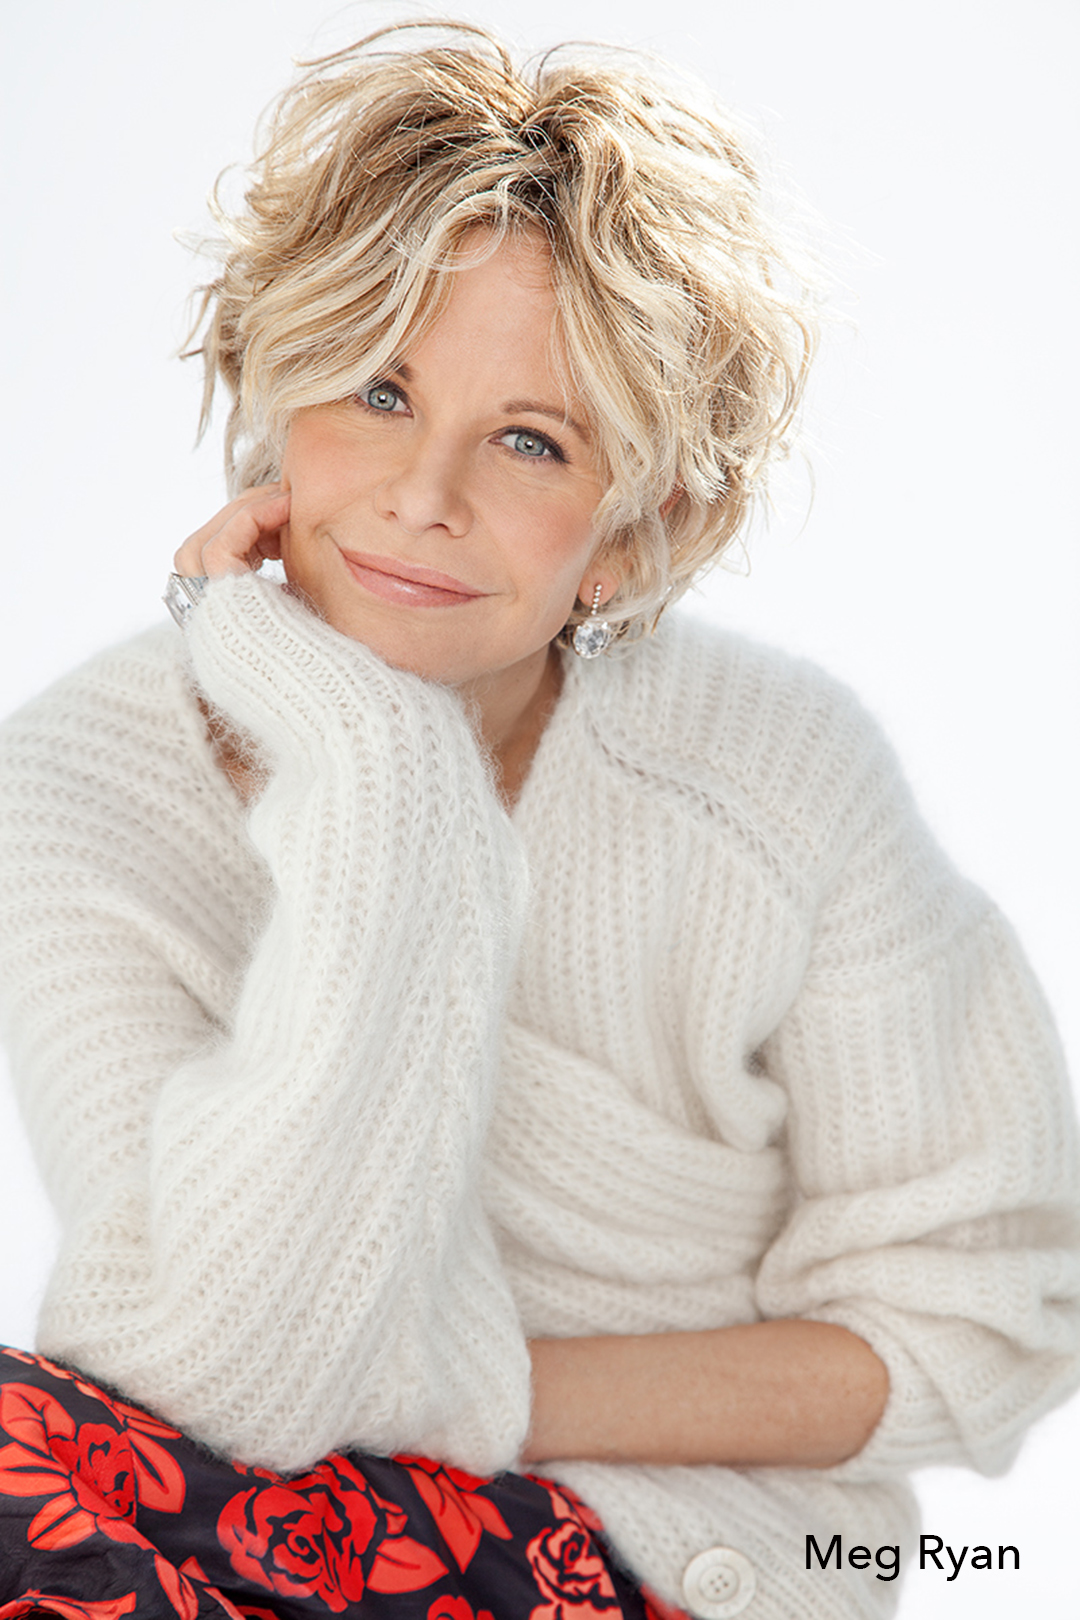 Meg Ryan Headshot By Udo Spreitzenbarth